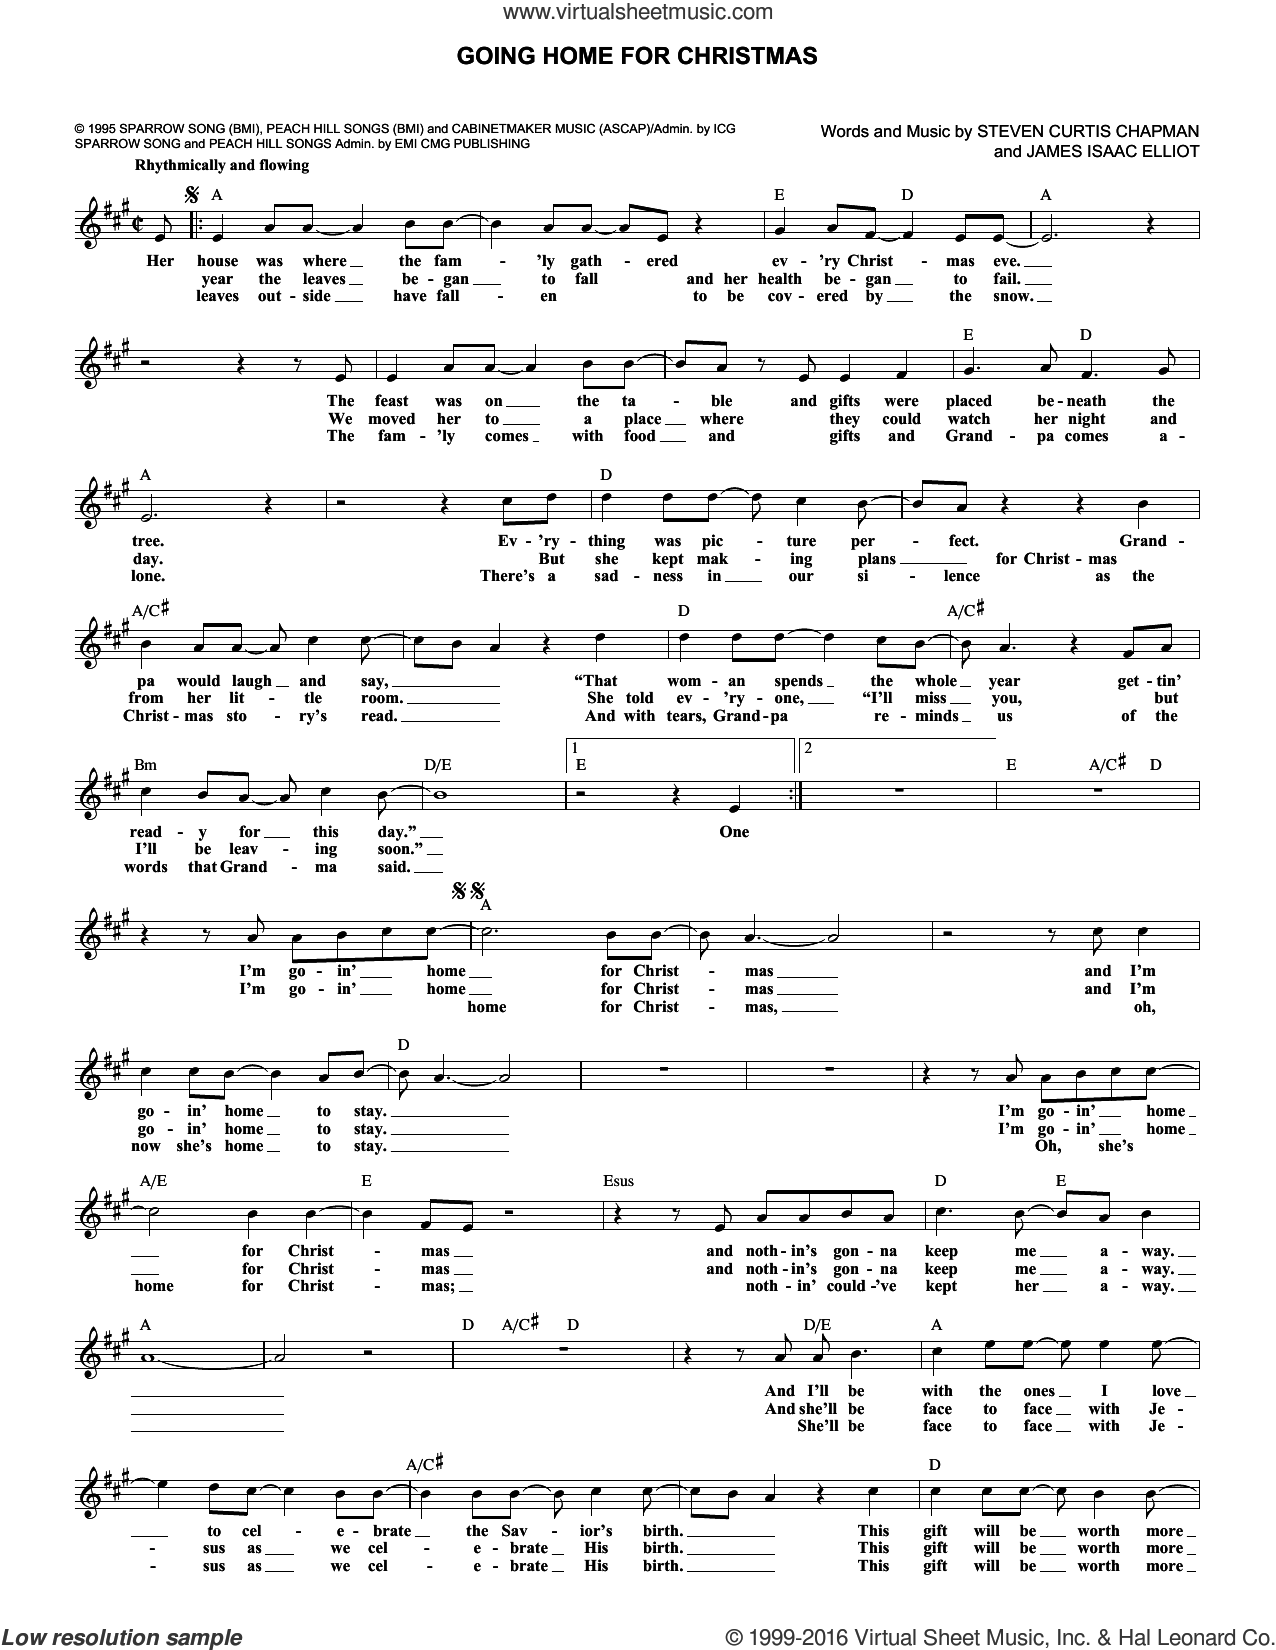 Going Home For Christmas sheet music for voice and other instruments (fake book) by Steven Curtis Chapman and James Isaac Elliott, intermediate skill level